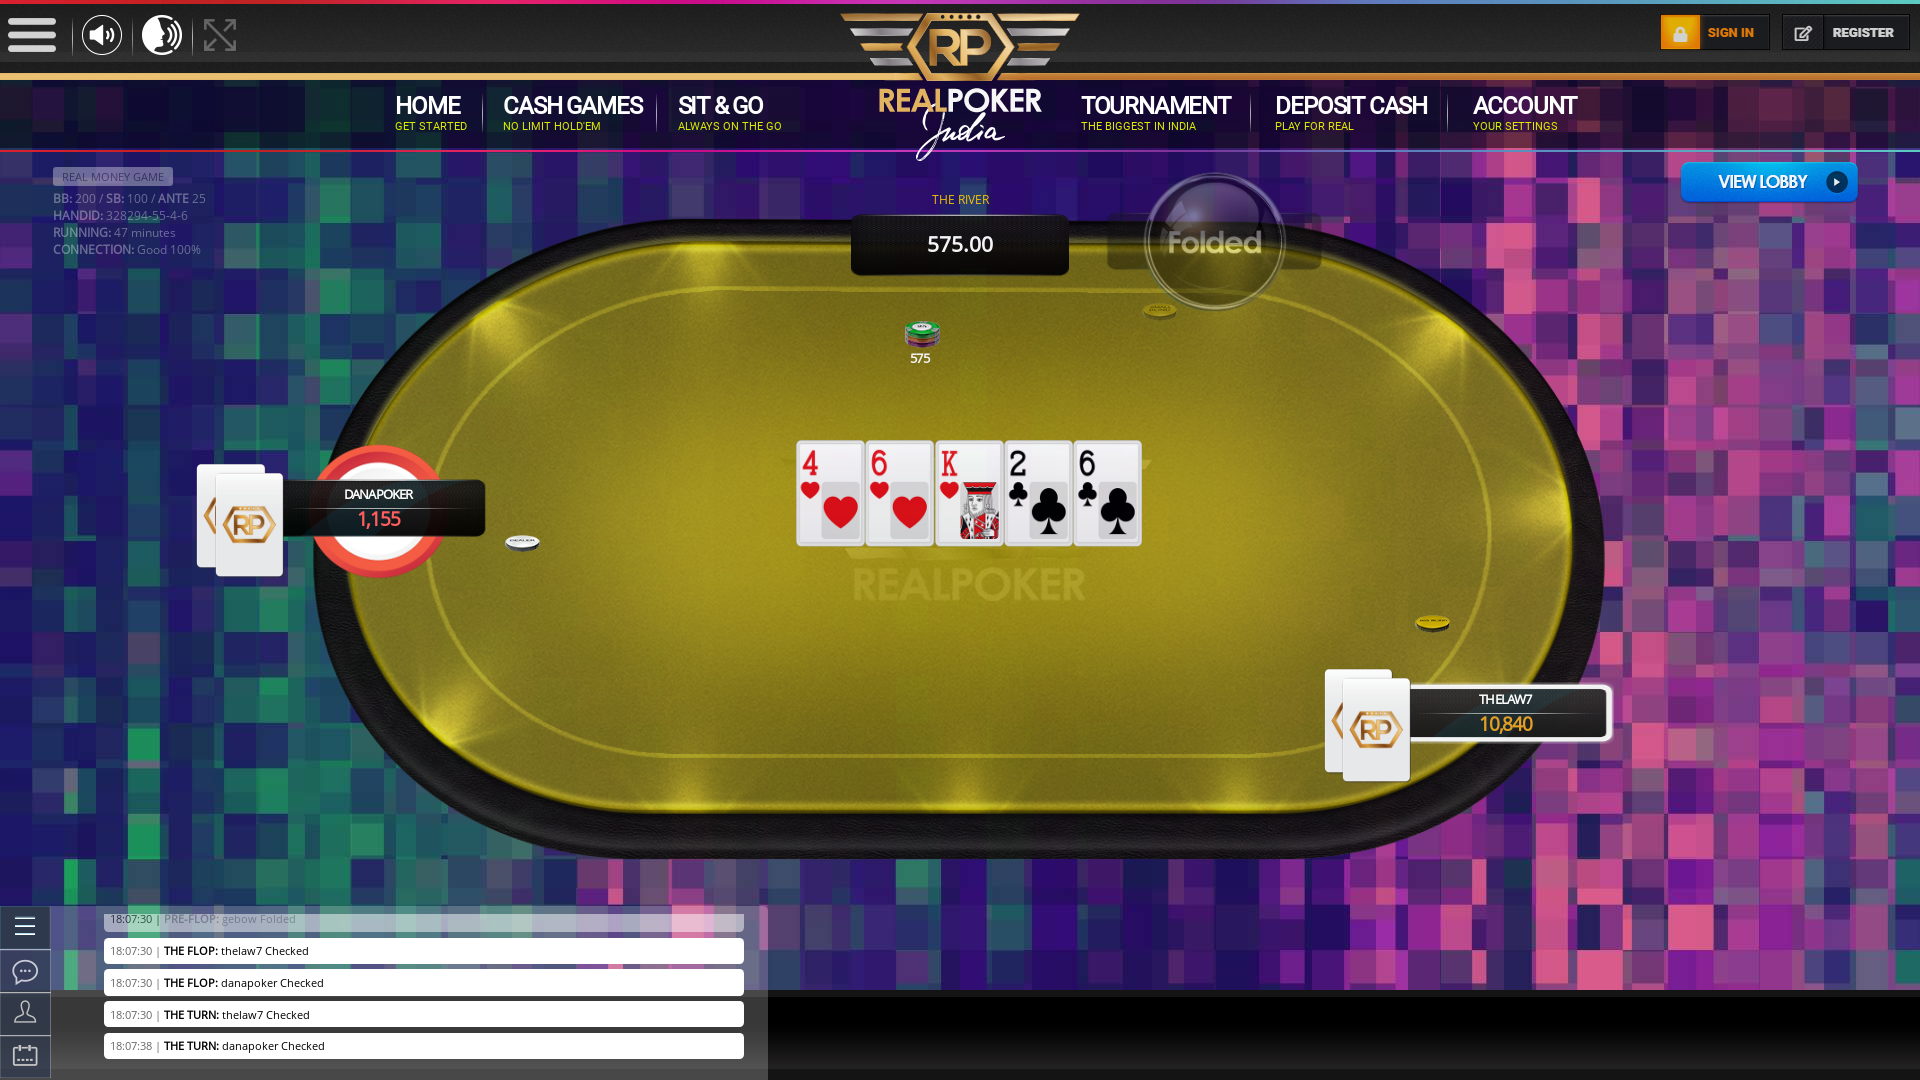 Real poker 10 player table in the 47th minute of the match